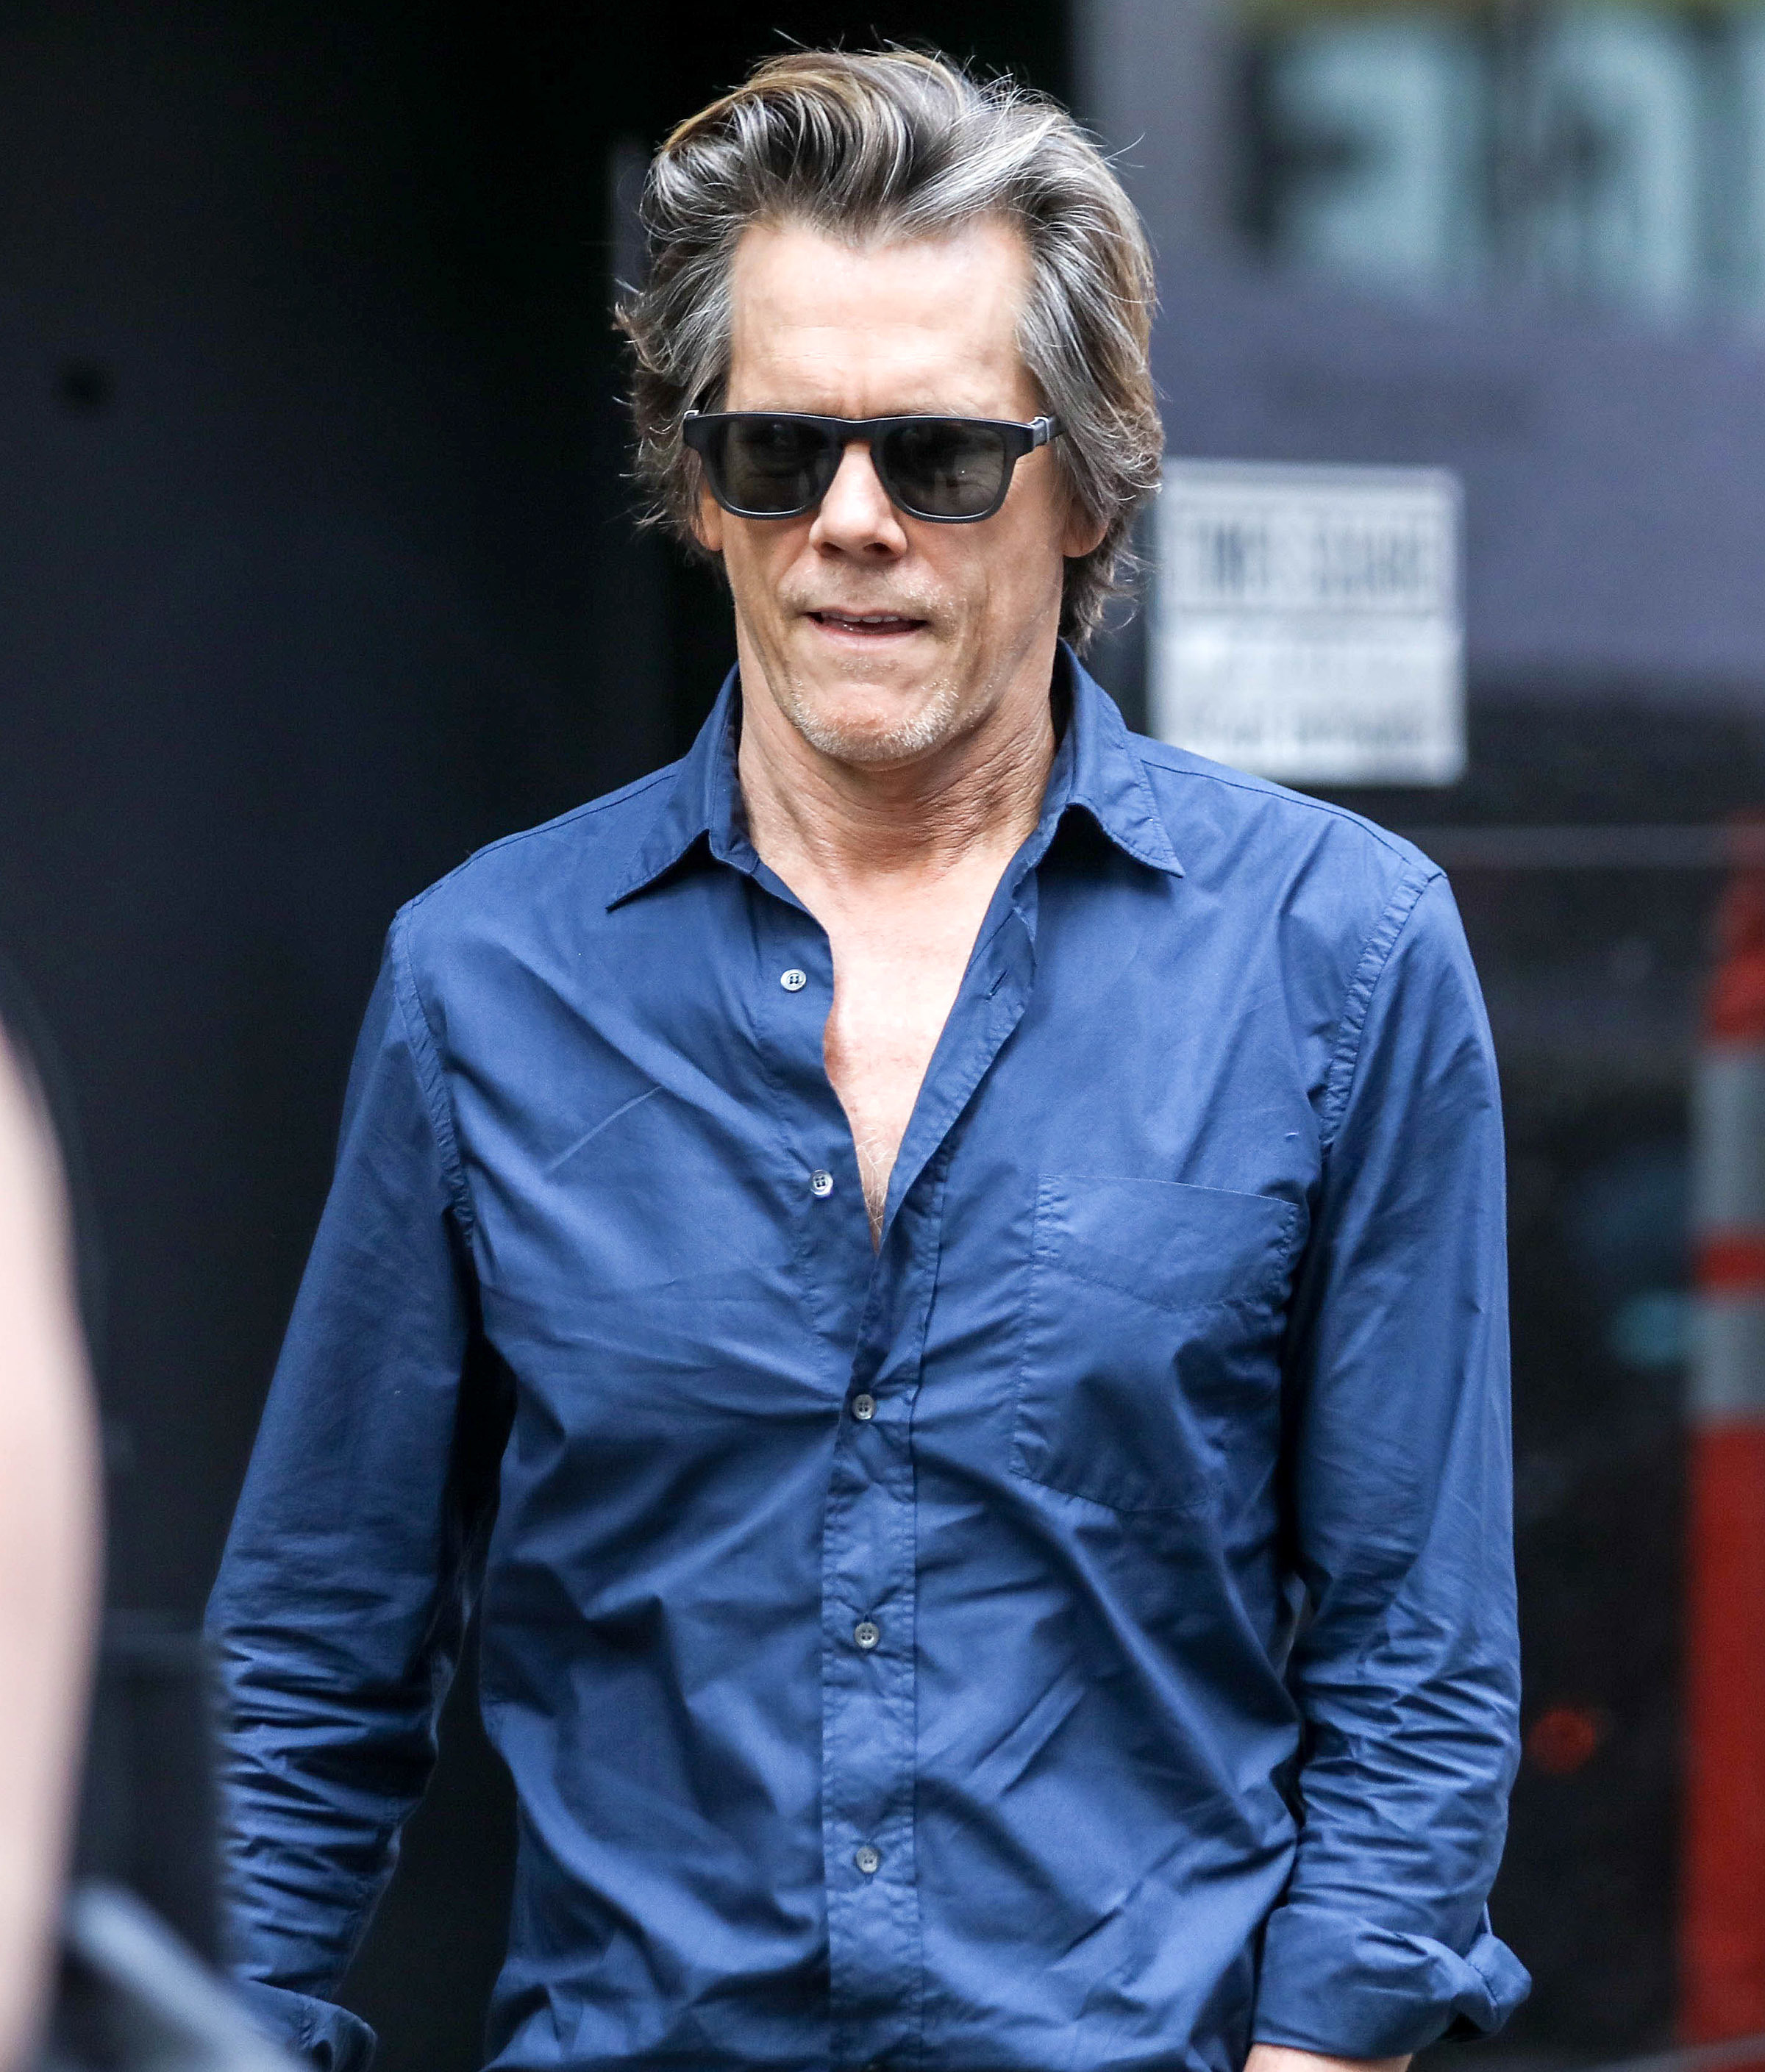 """Kevin Bacon appears at """"Good Morning America"""" in New York City on July 18, 2017."""